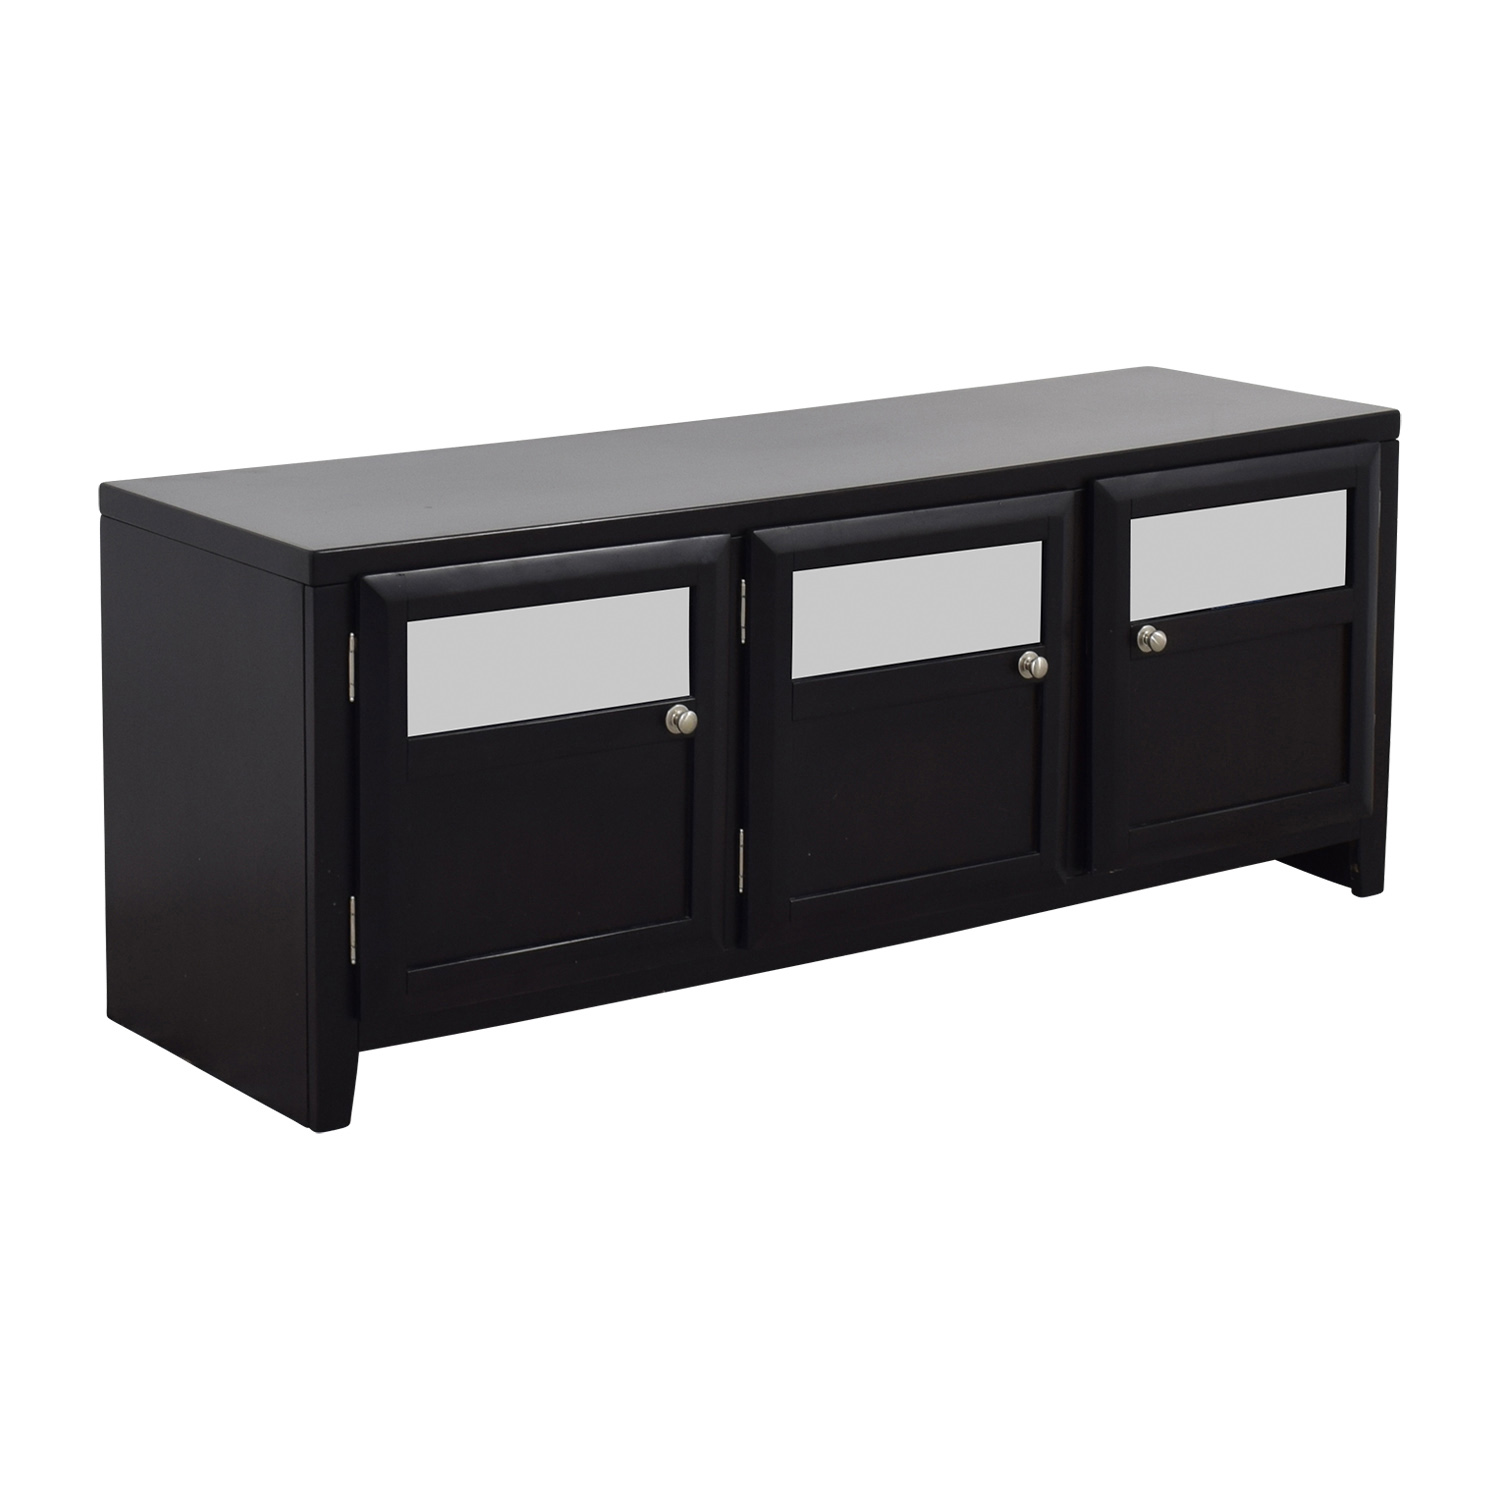 Charmant ... Target Target Wood U0026 Glass TV Stand On ...